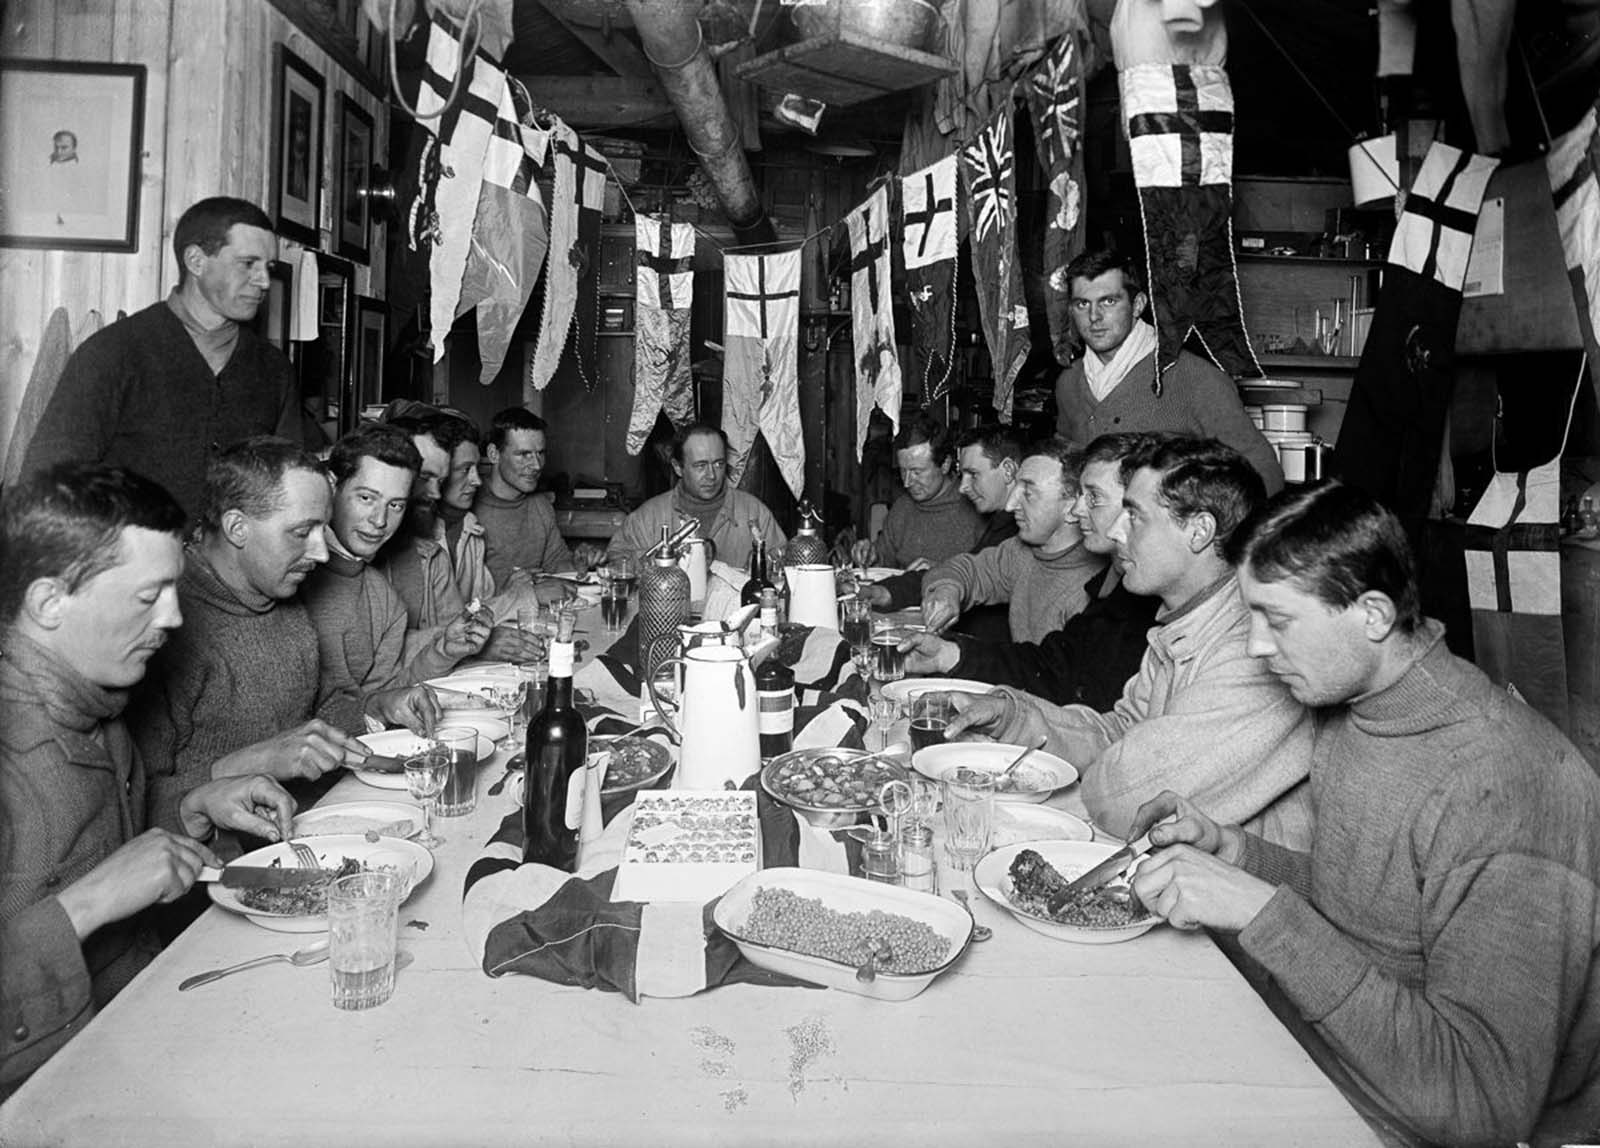 Capt. Scott, at the head of the table, celebrates his 43rd birthday. June 6, 1911.